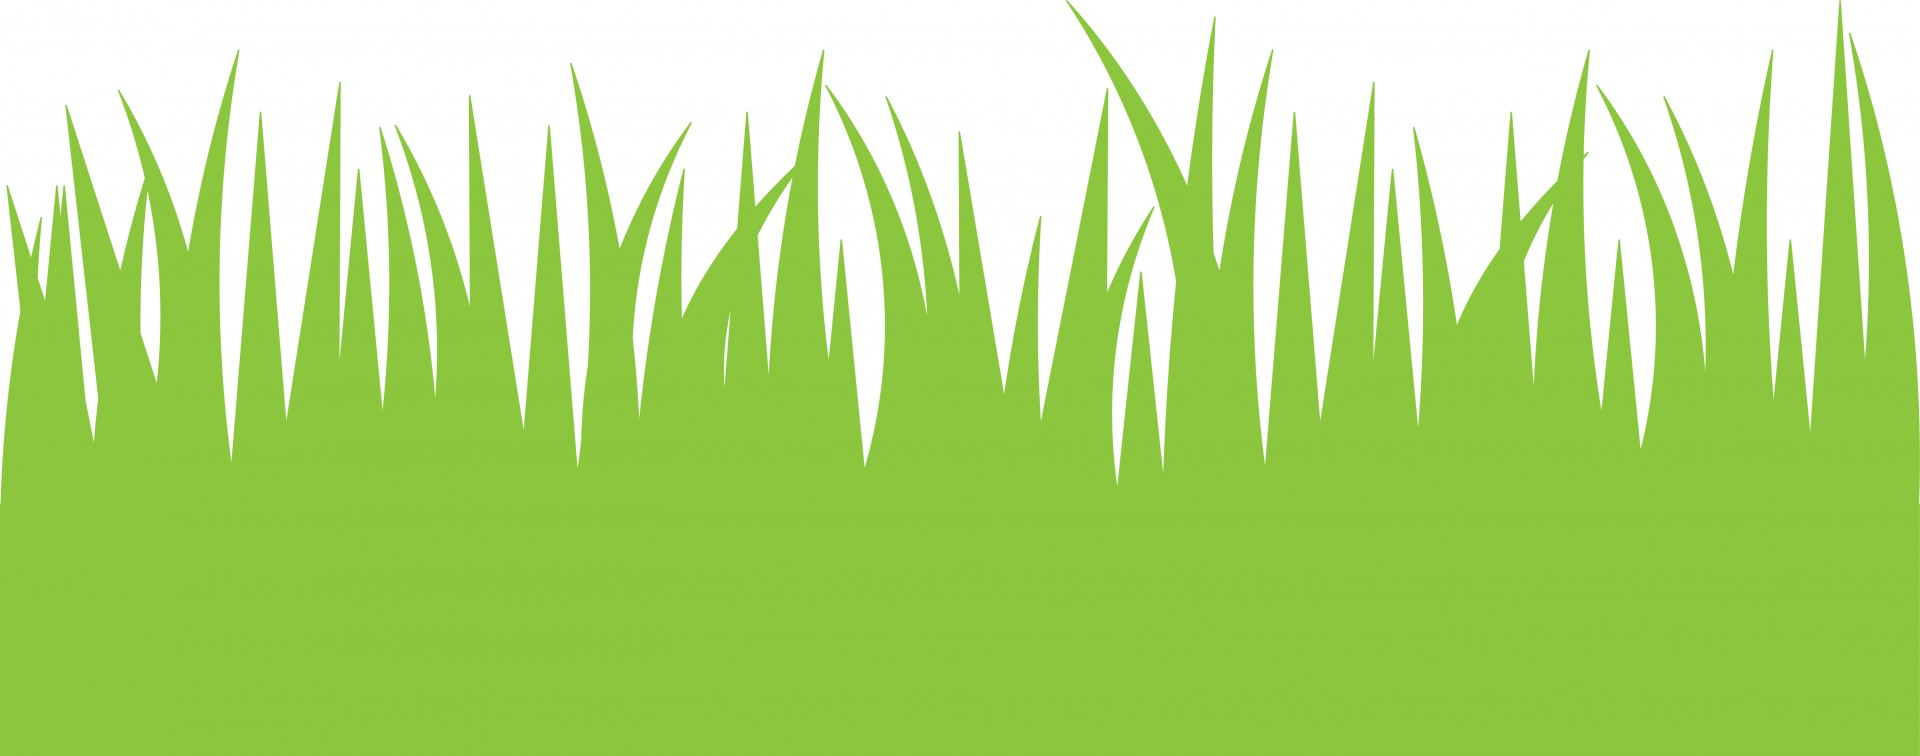 Nice green and beautiful lawn clipart clip art transparent stock Beautiful Lawn Cliparts - Cliparts Zone clip art transparent stock